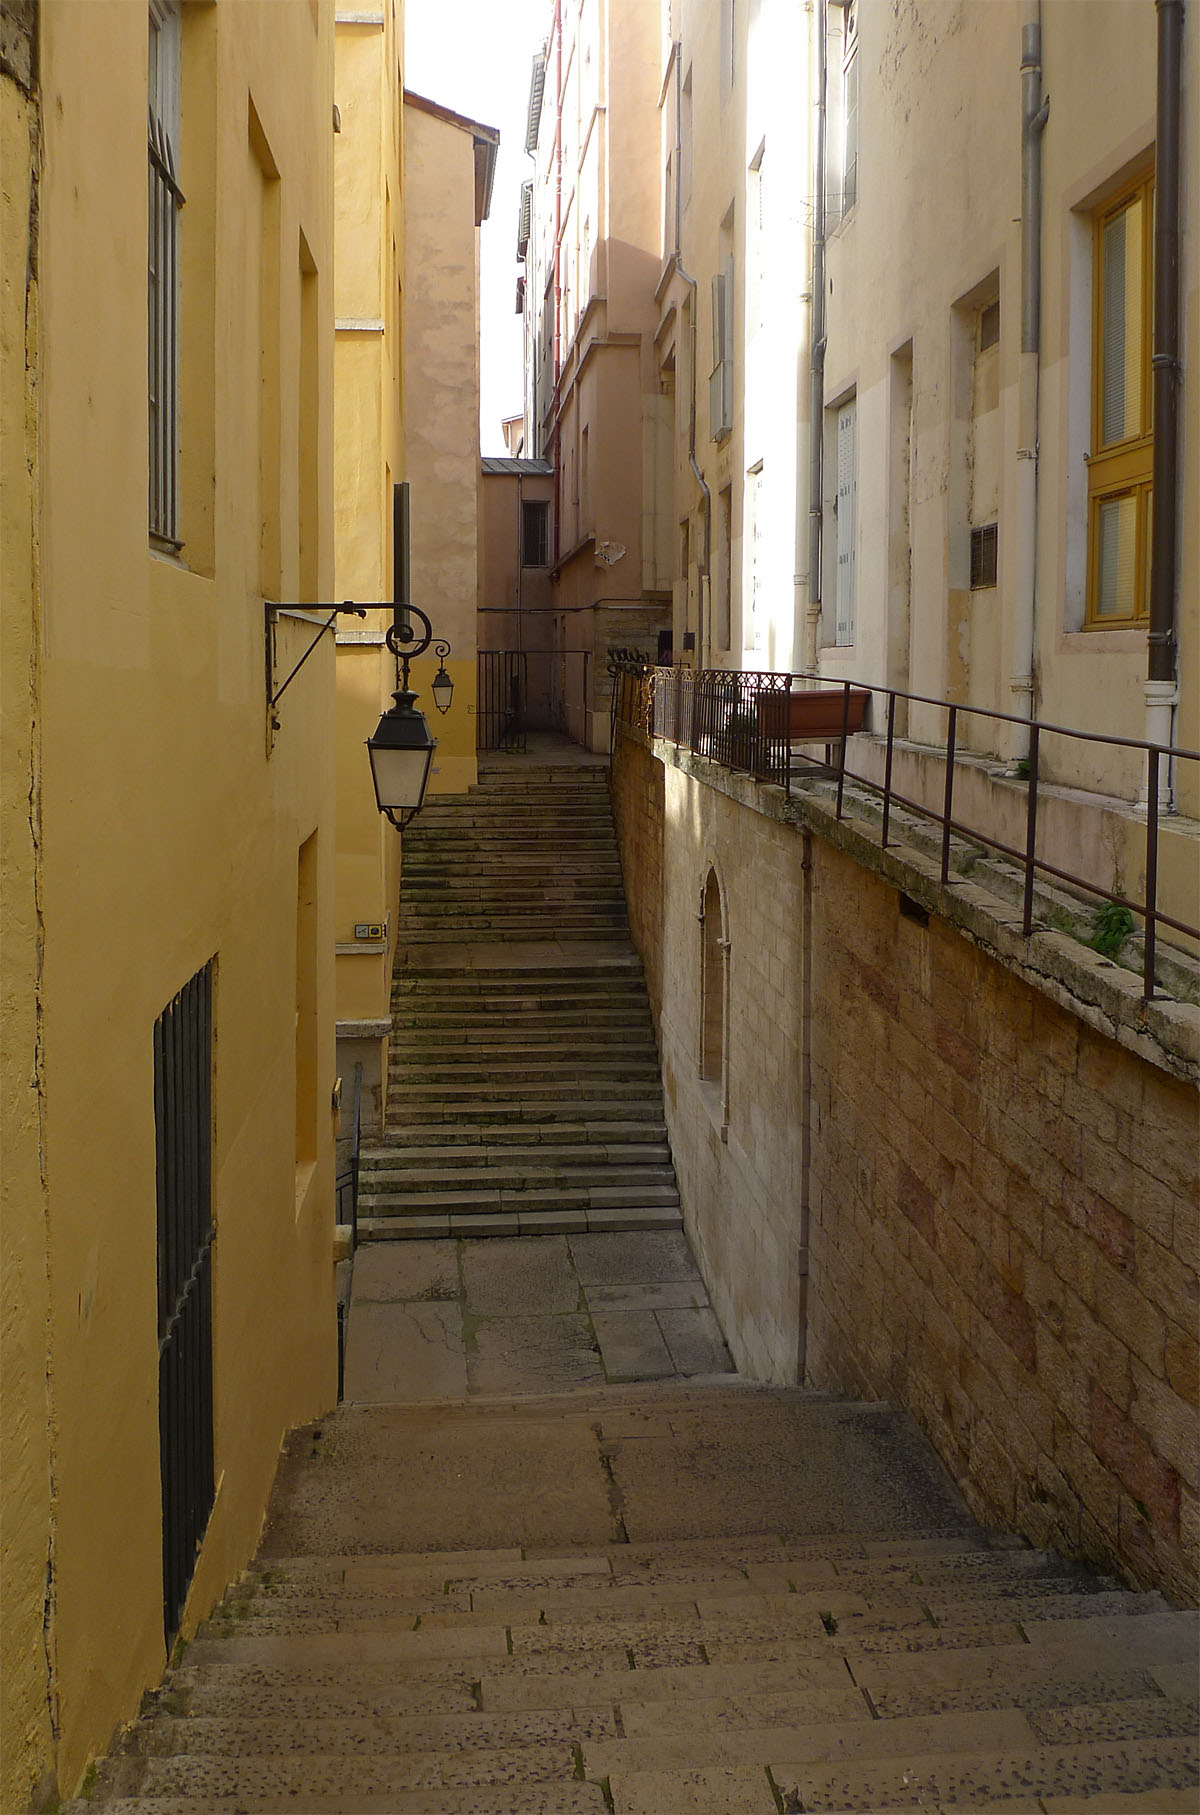 LyonPassageways